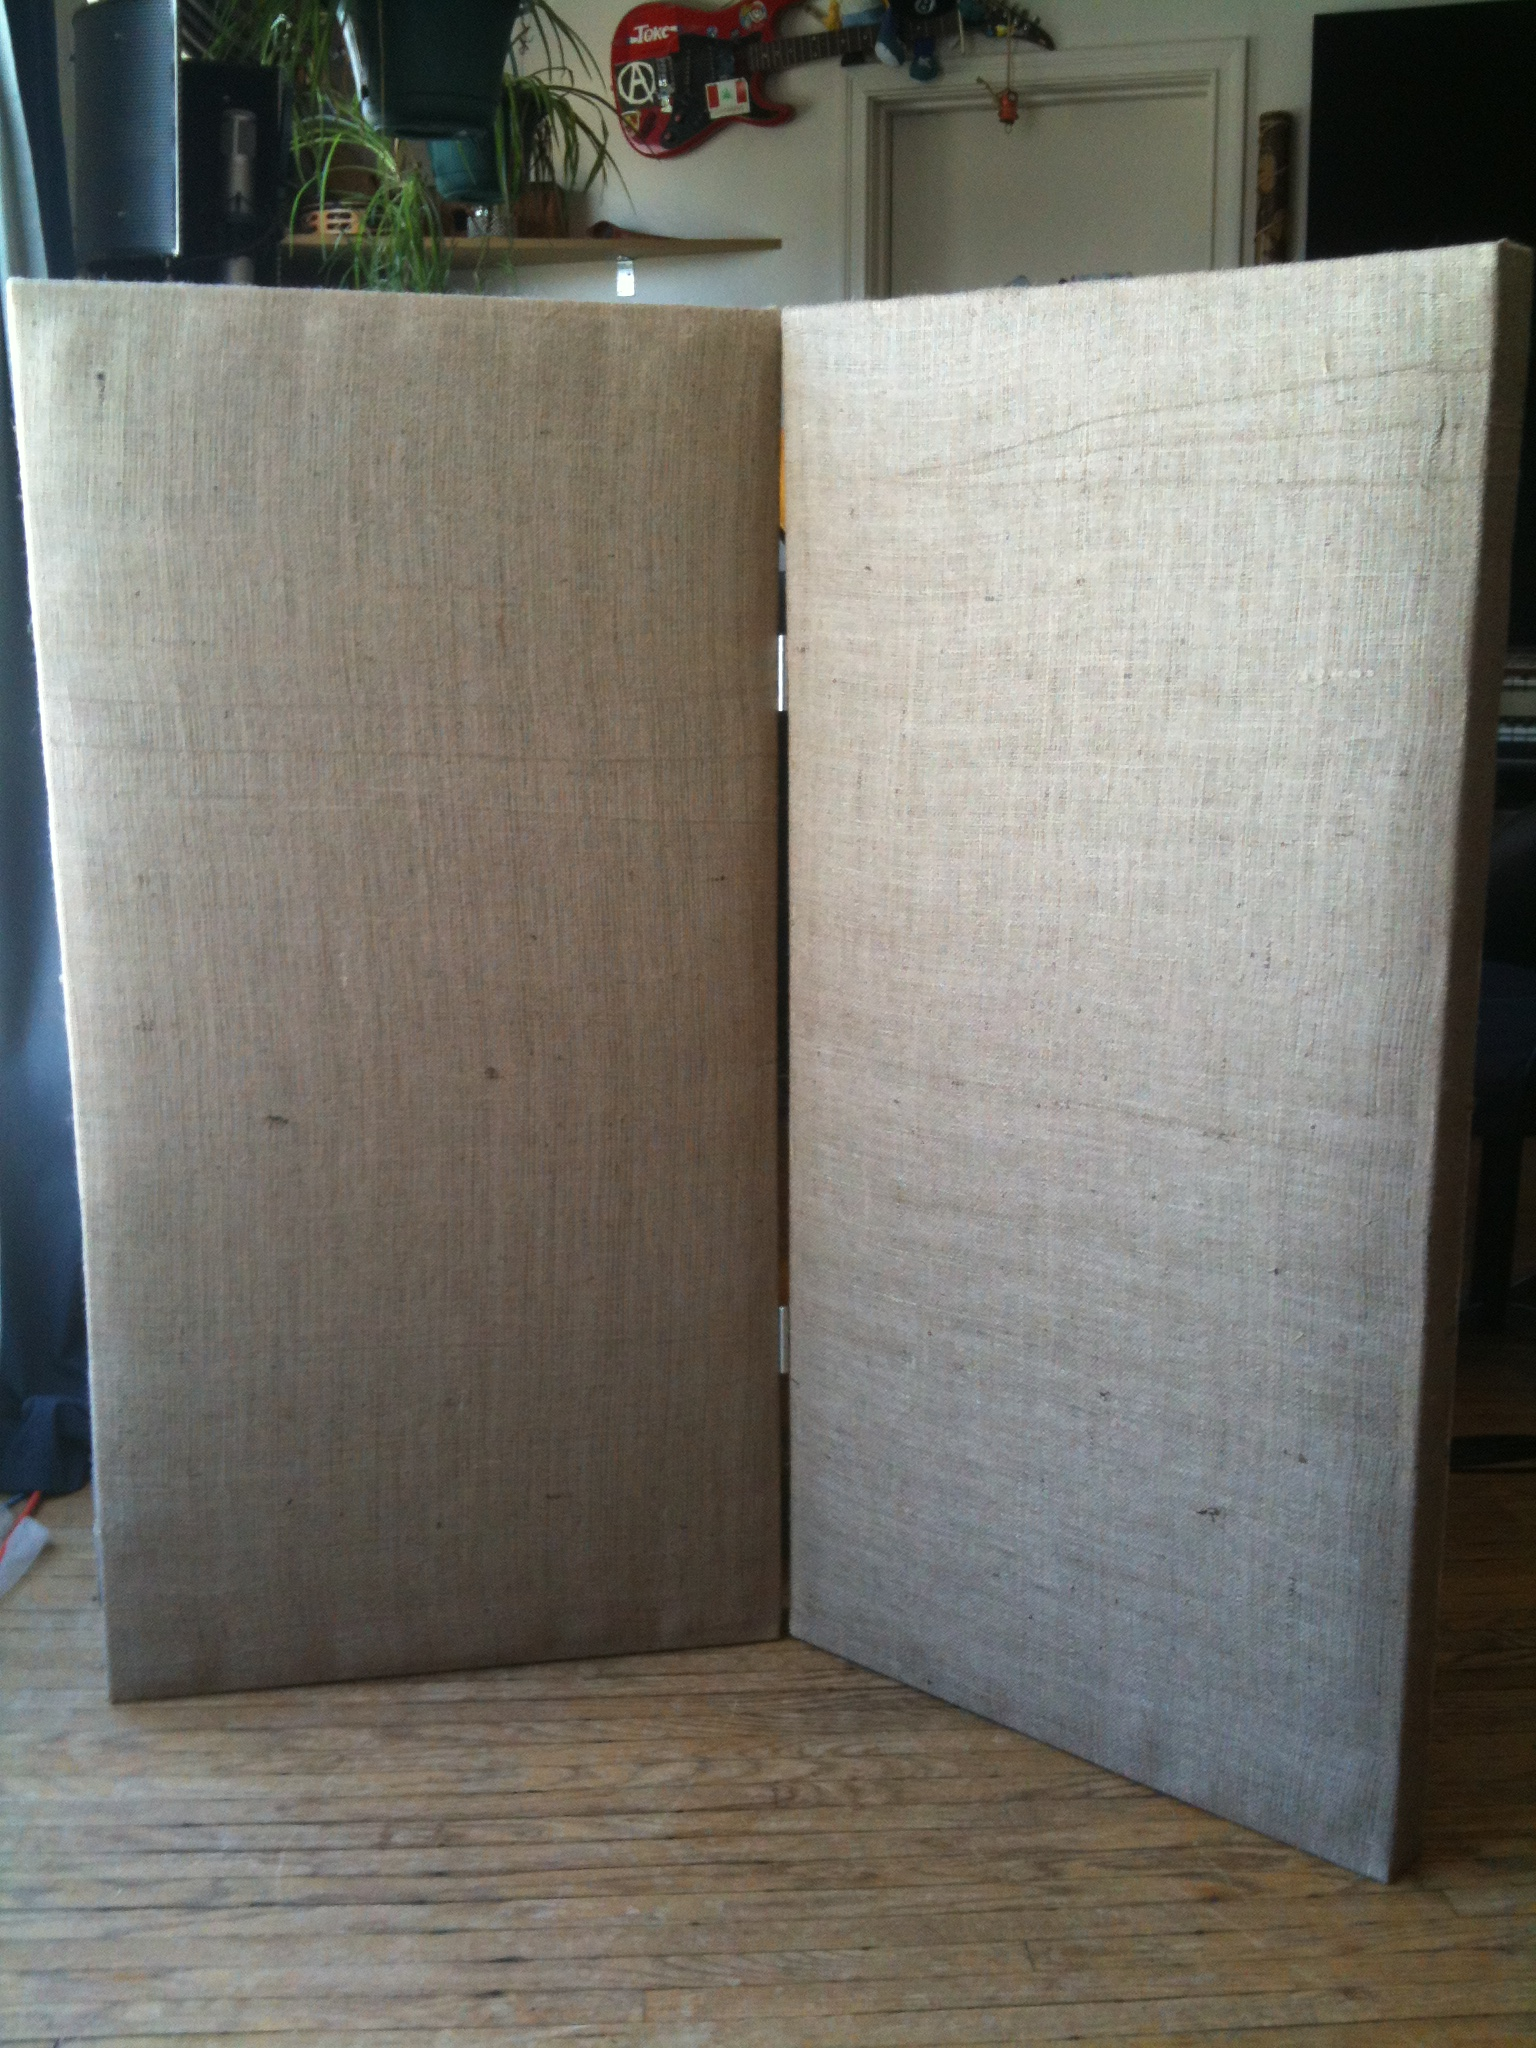 Diy Soundproof Room Divider Week 14 Sound Absorption Panels Business Weekly Creations